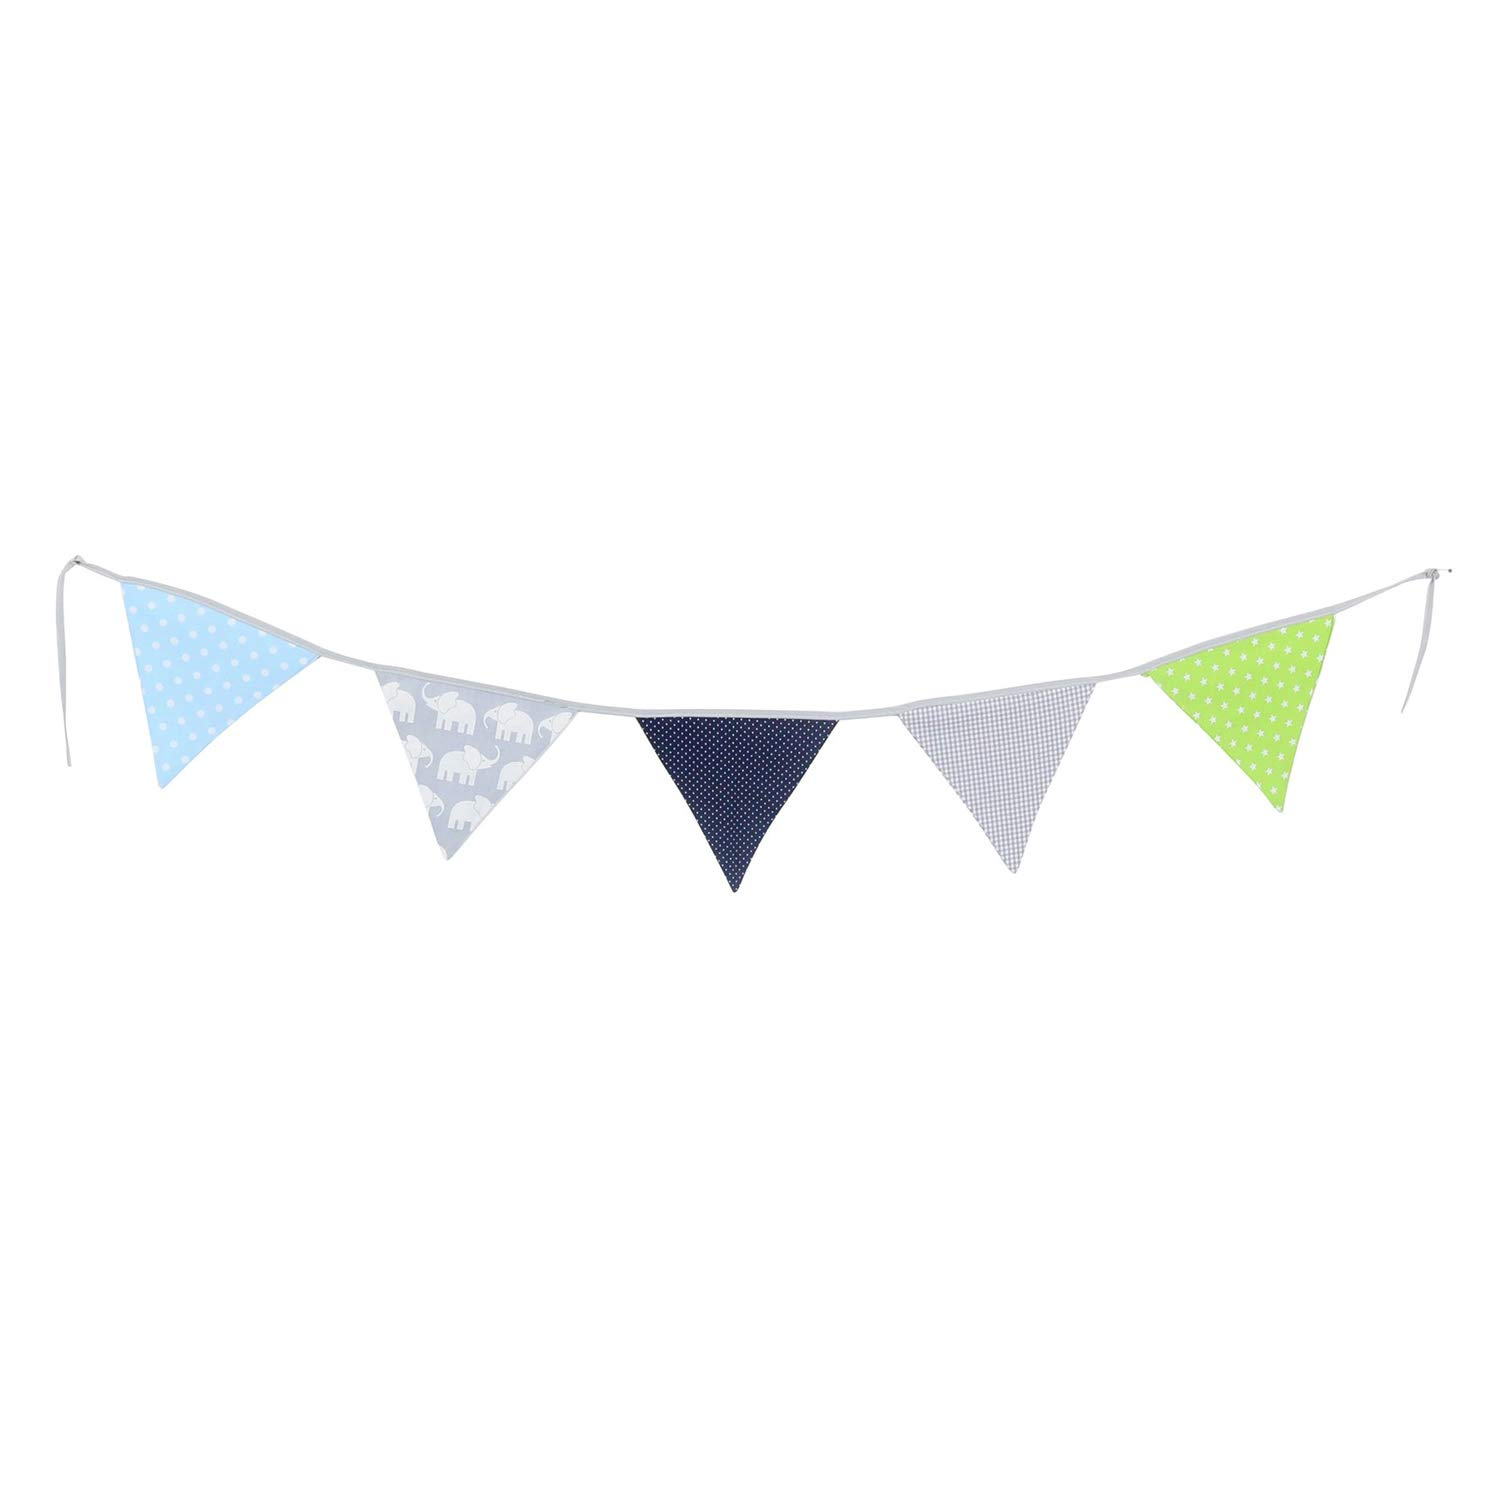 100% Cotton Fabric Bunting Flag Garland Pennant Banner by ULLENBOOM   Elephant/Star/Checkered   Baby Shower/Party/Nursery   6 Ft - Boys Blue and Green